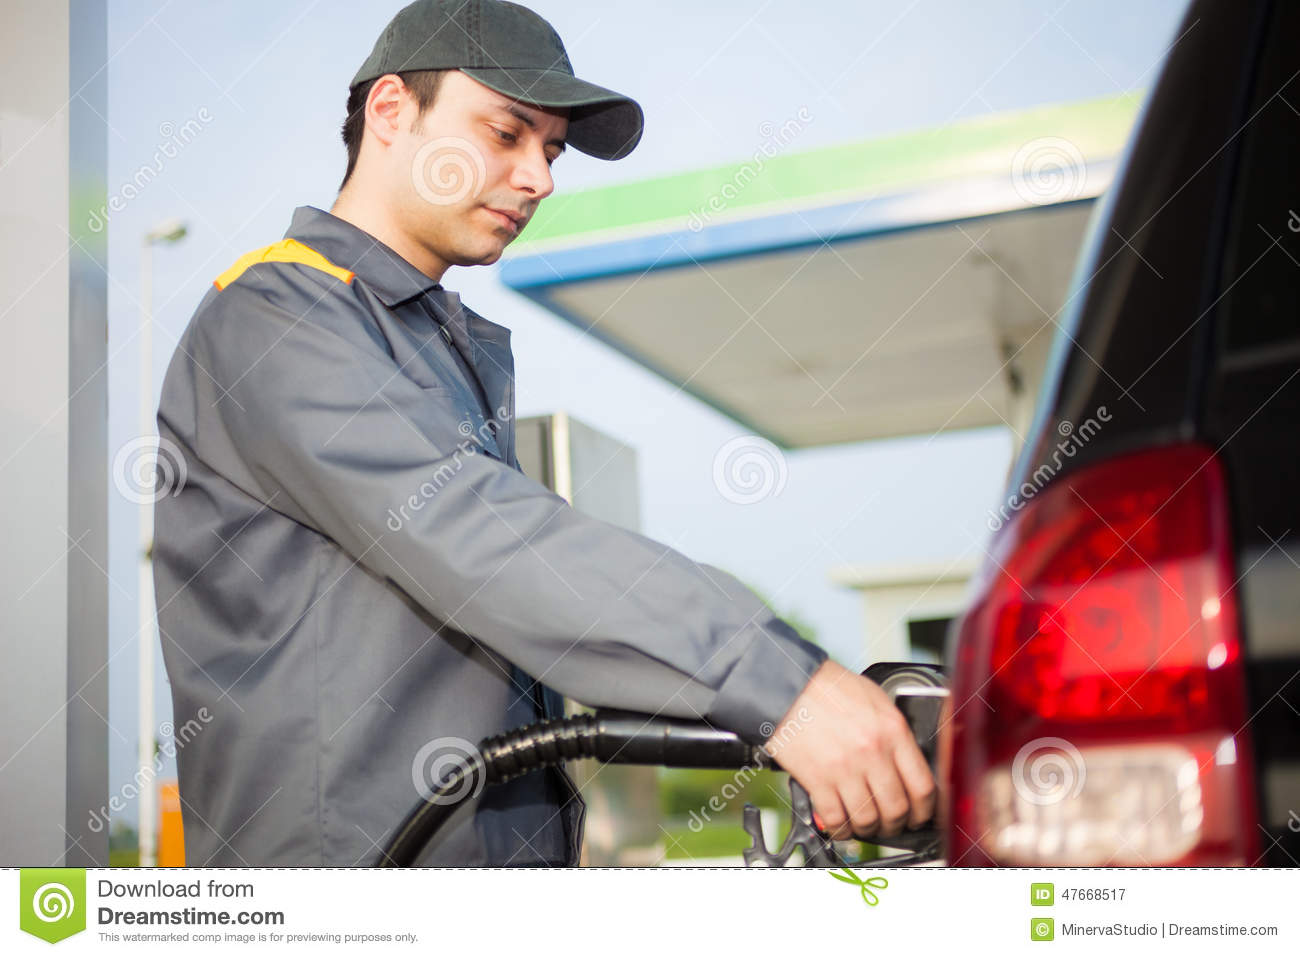 Gas Station Attendant Stock Image - Image: 38414361